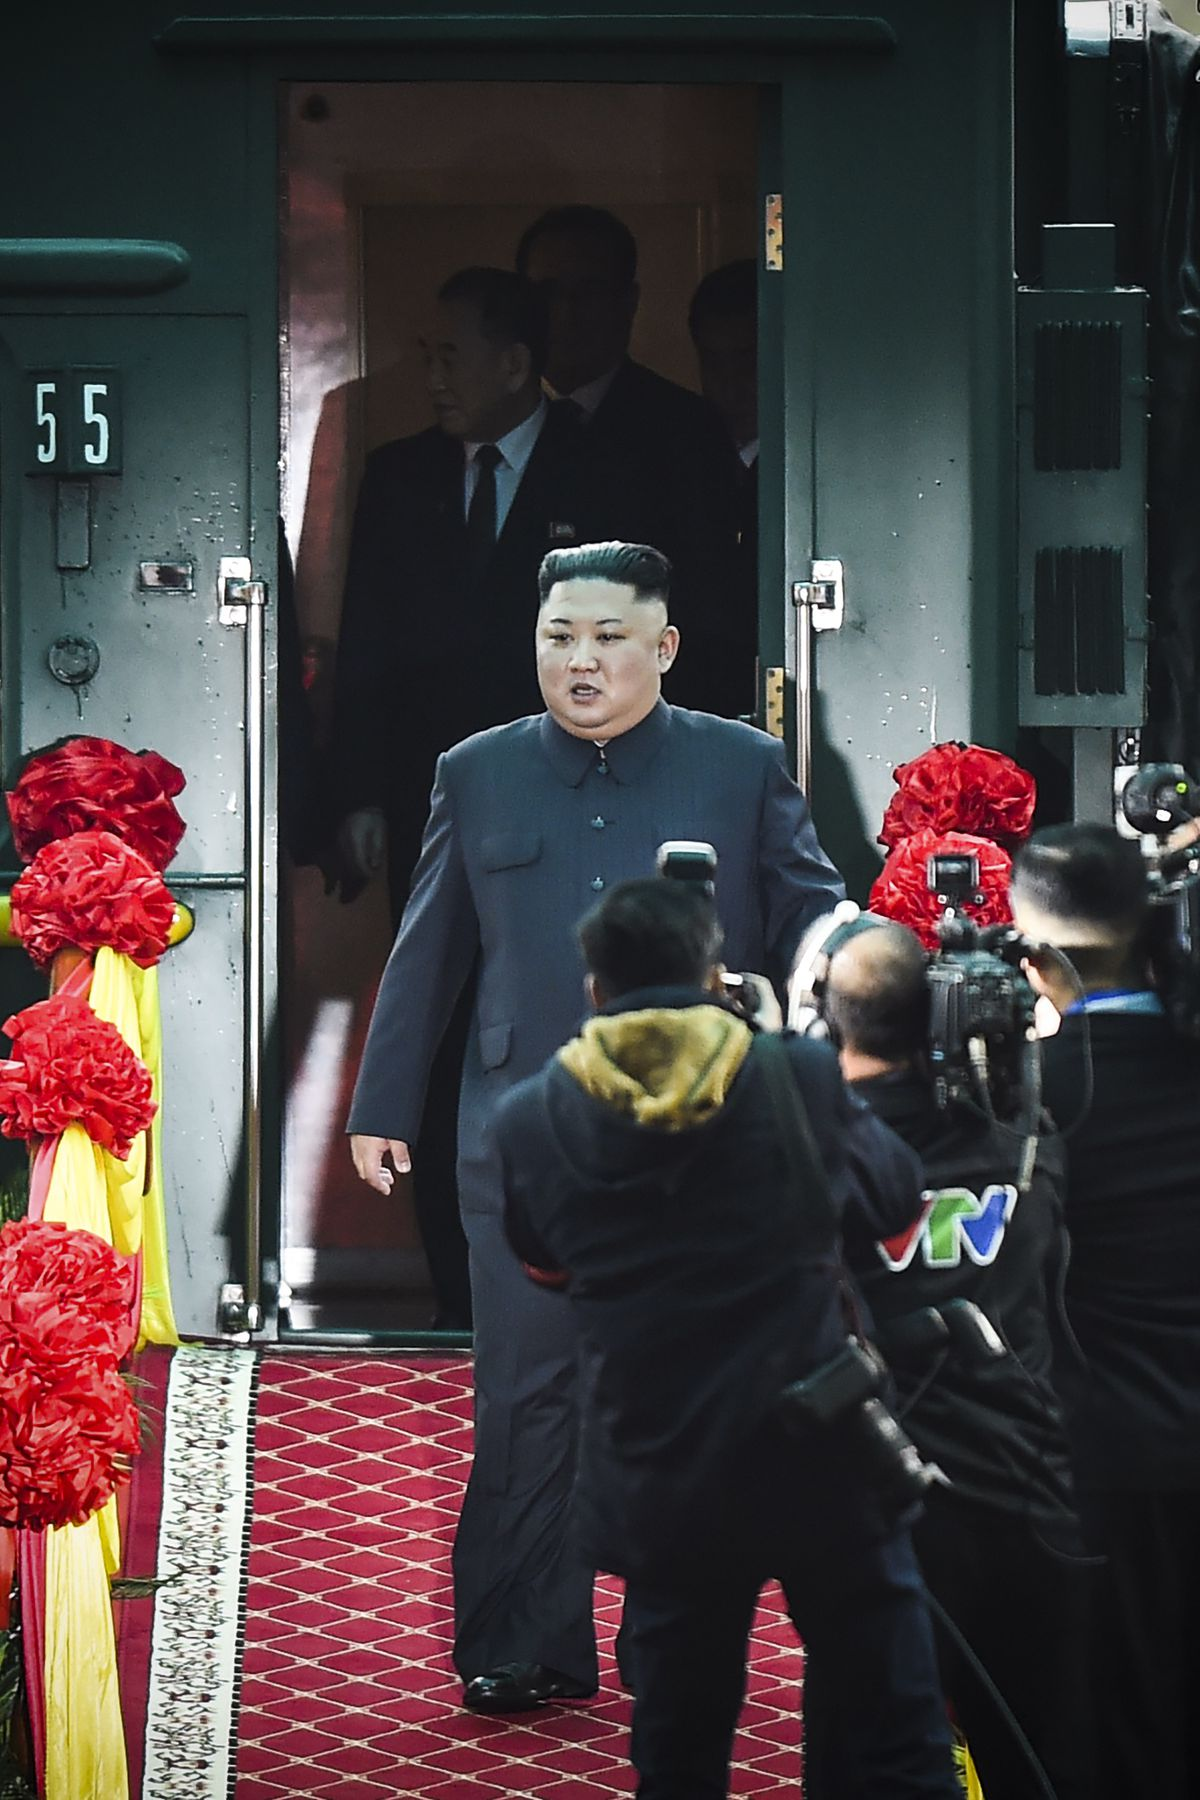 North Korea's leader Kim Jong Un arrives at the Dong Dang railway station in Dong Dang, Lang Son province, on February 26, 2019, to attend the second US-North Korea summit.